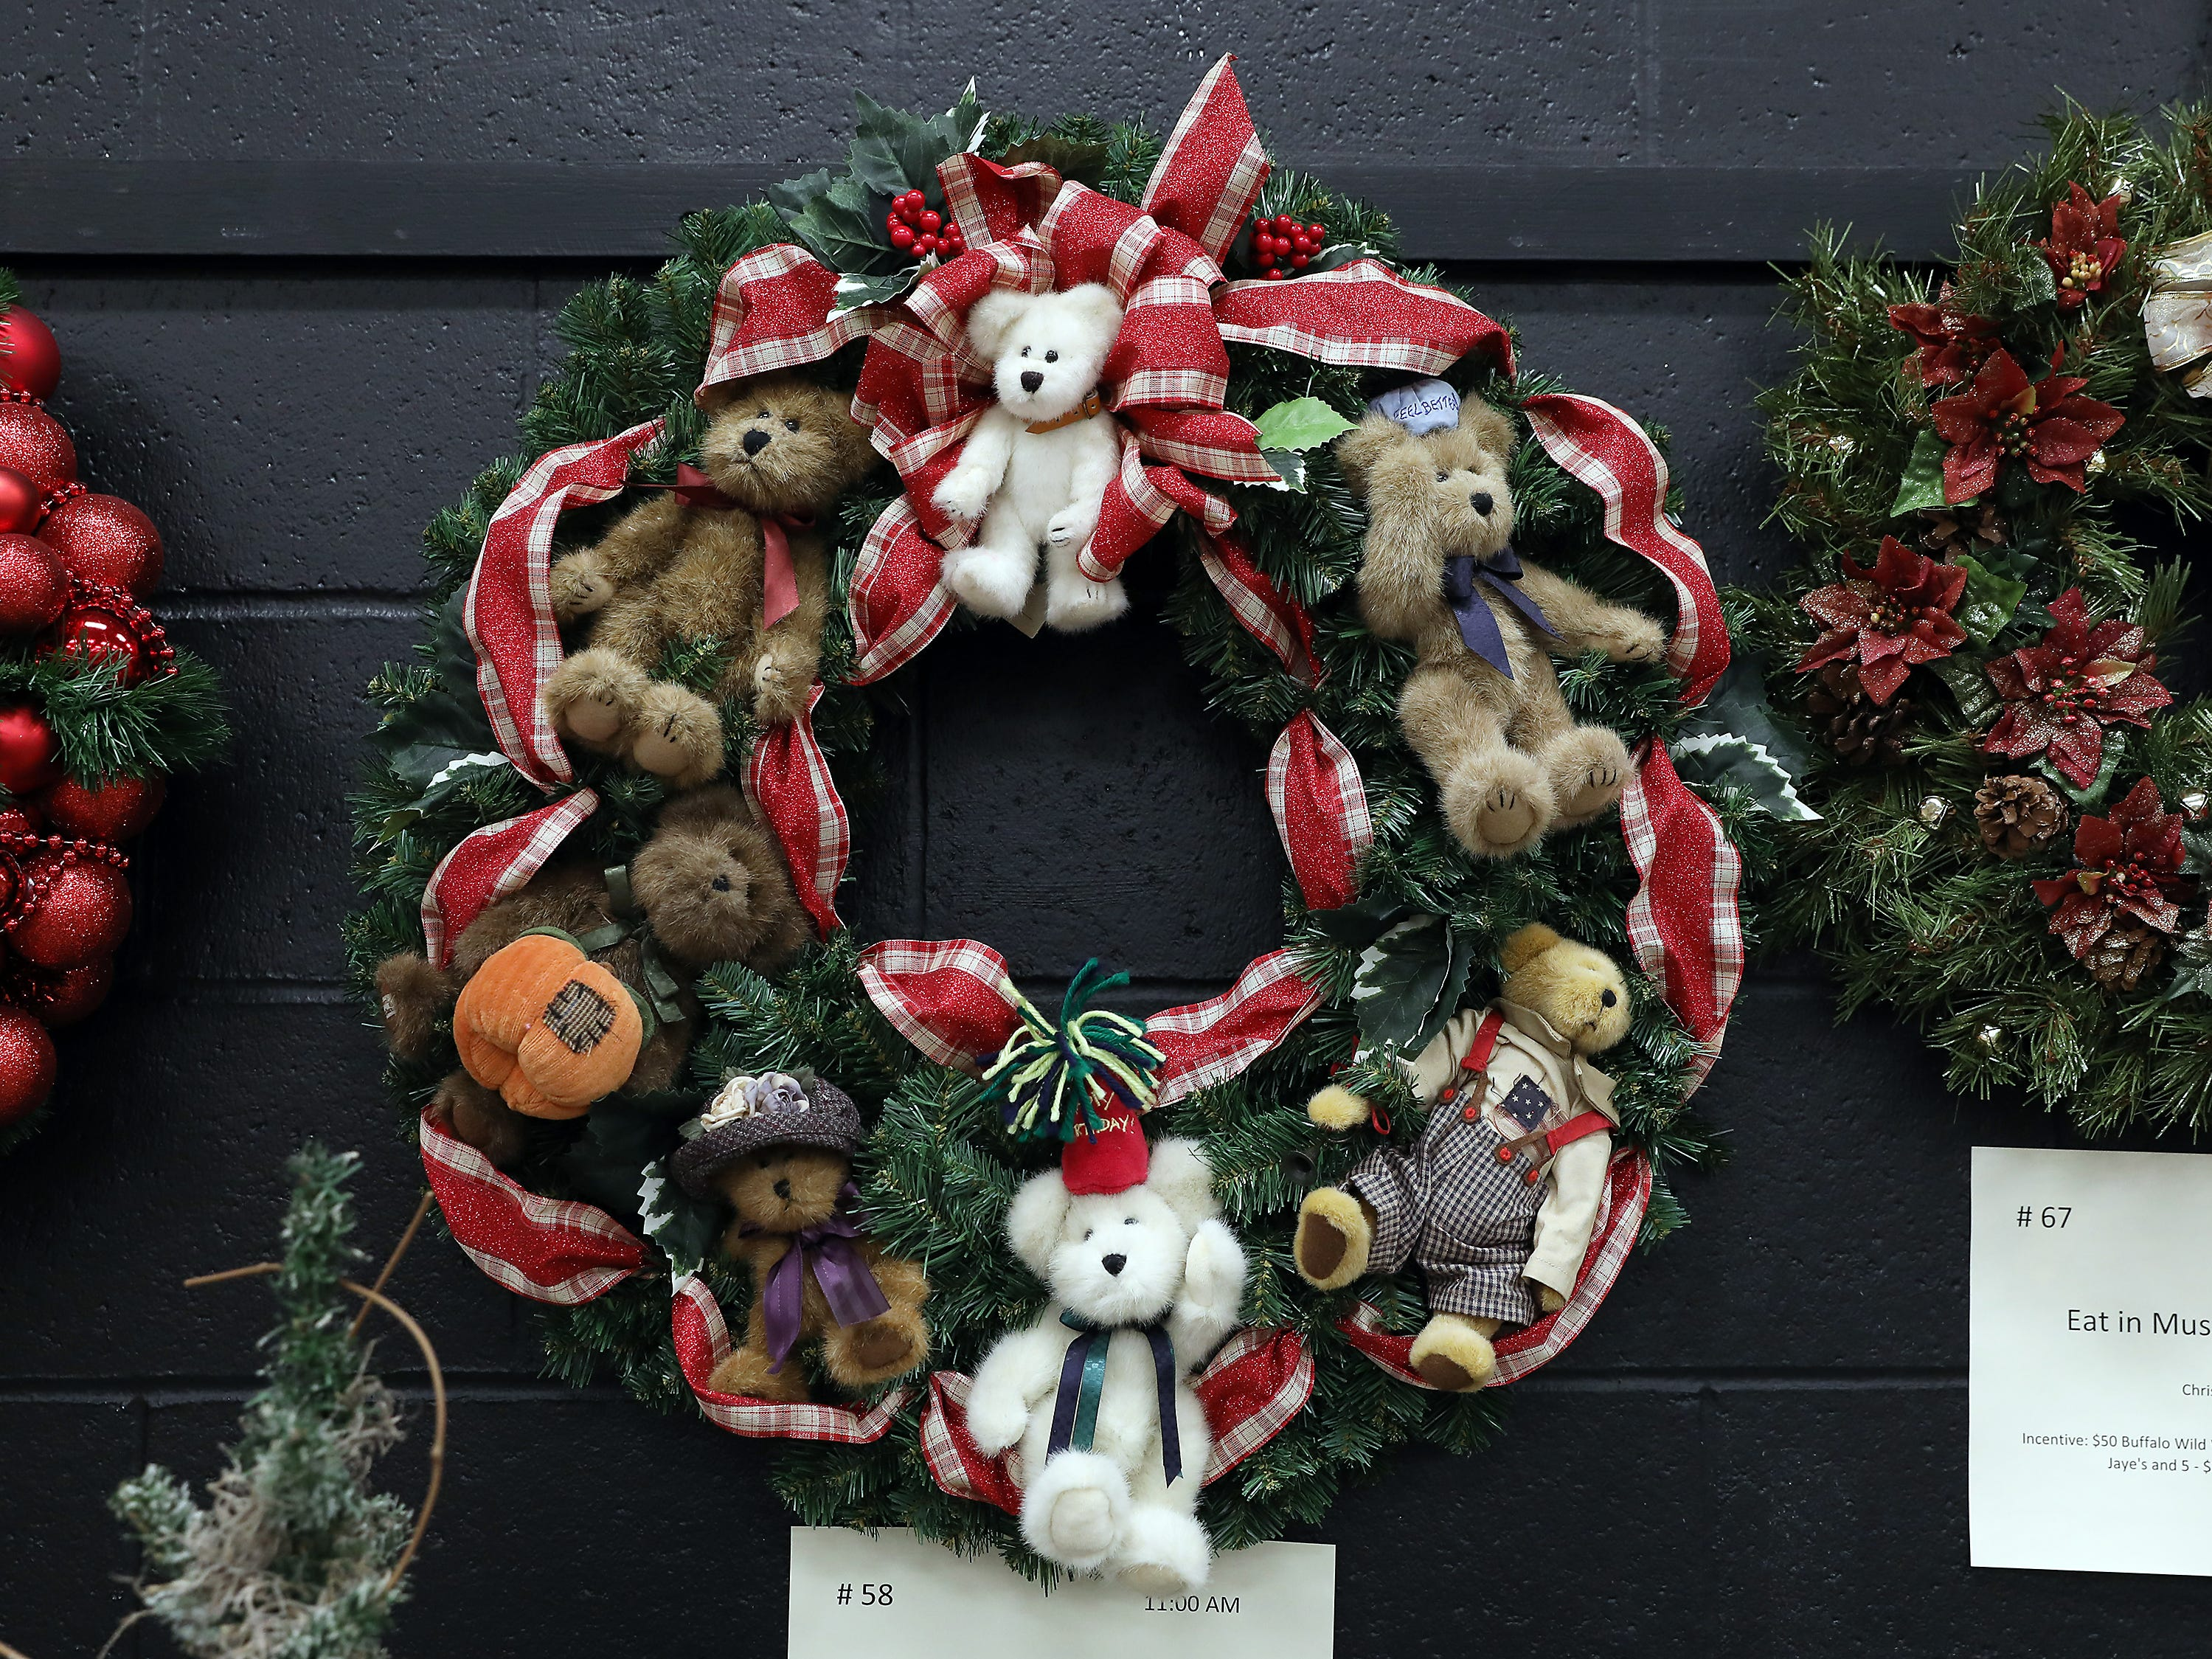 "58	11:00 AM	Committee Entry	Wreath	A Boyds Bear Christmas	A 28"" Boyds Bear wreath decorated with 7 collectible Boyds Bears with tags.  Adorned with Christmas holly and ribbon		1 large collectible Boyds Bear, $50 gift card to your choice Adornetto's, Giacomo's, Old Market House Inn."